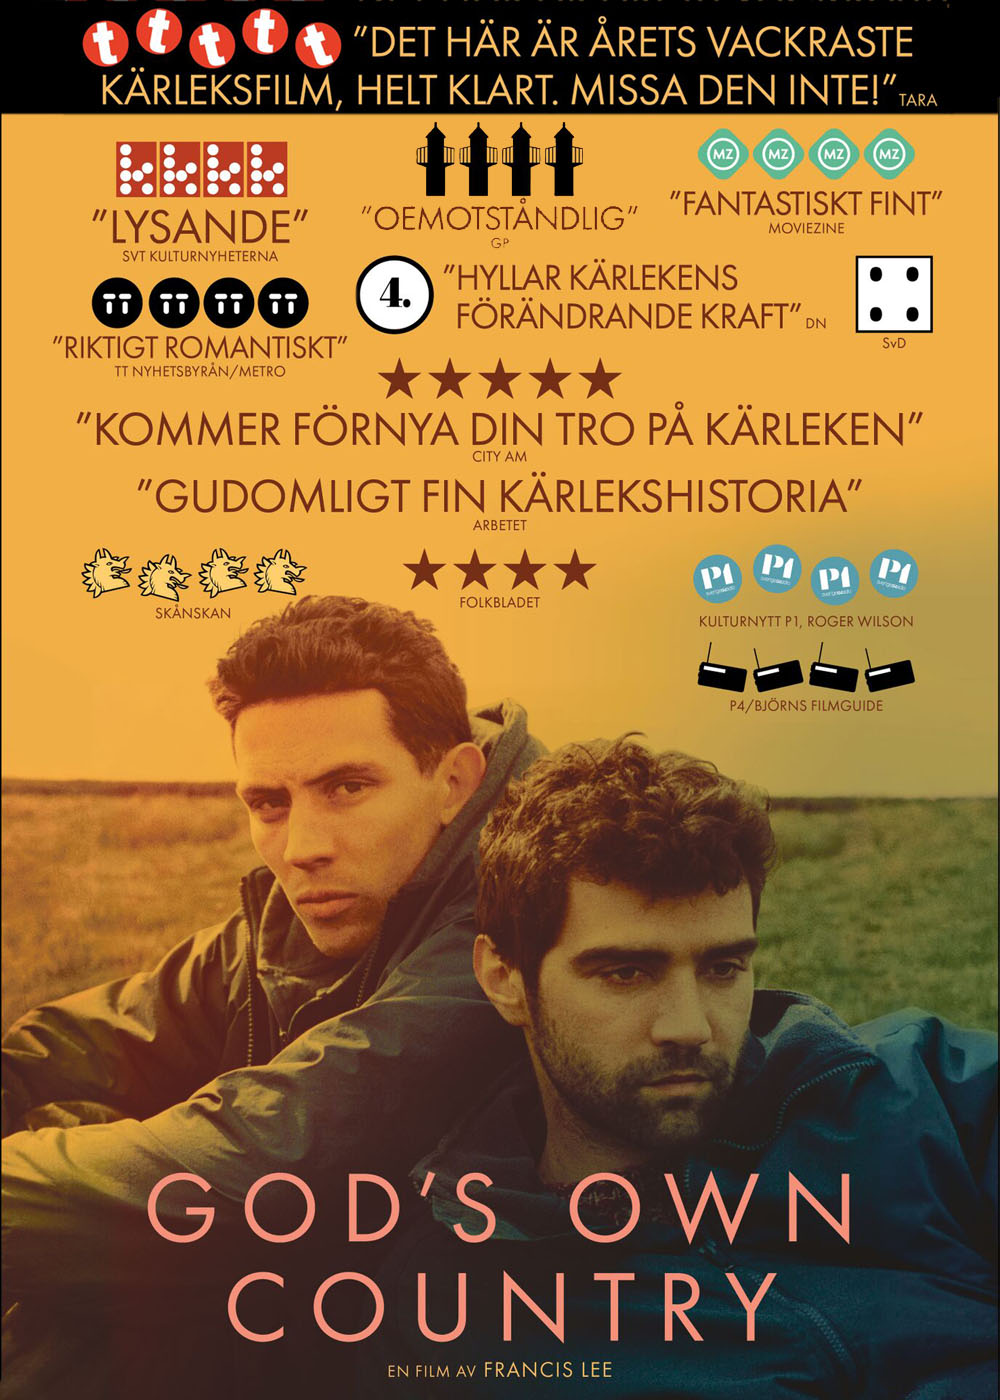 Godsowncountry_rec-poster web.jpg